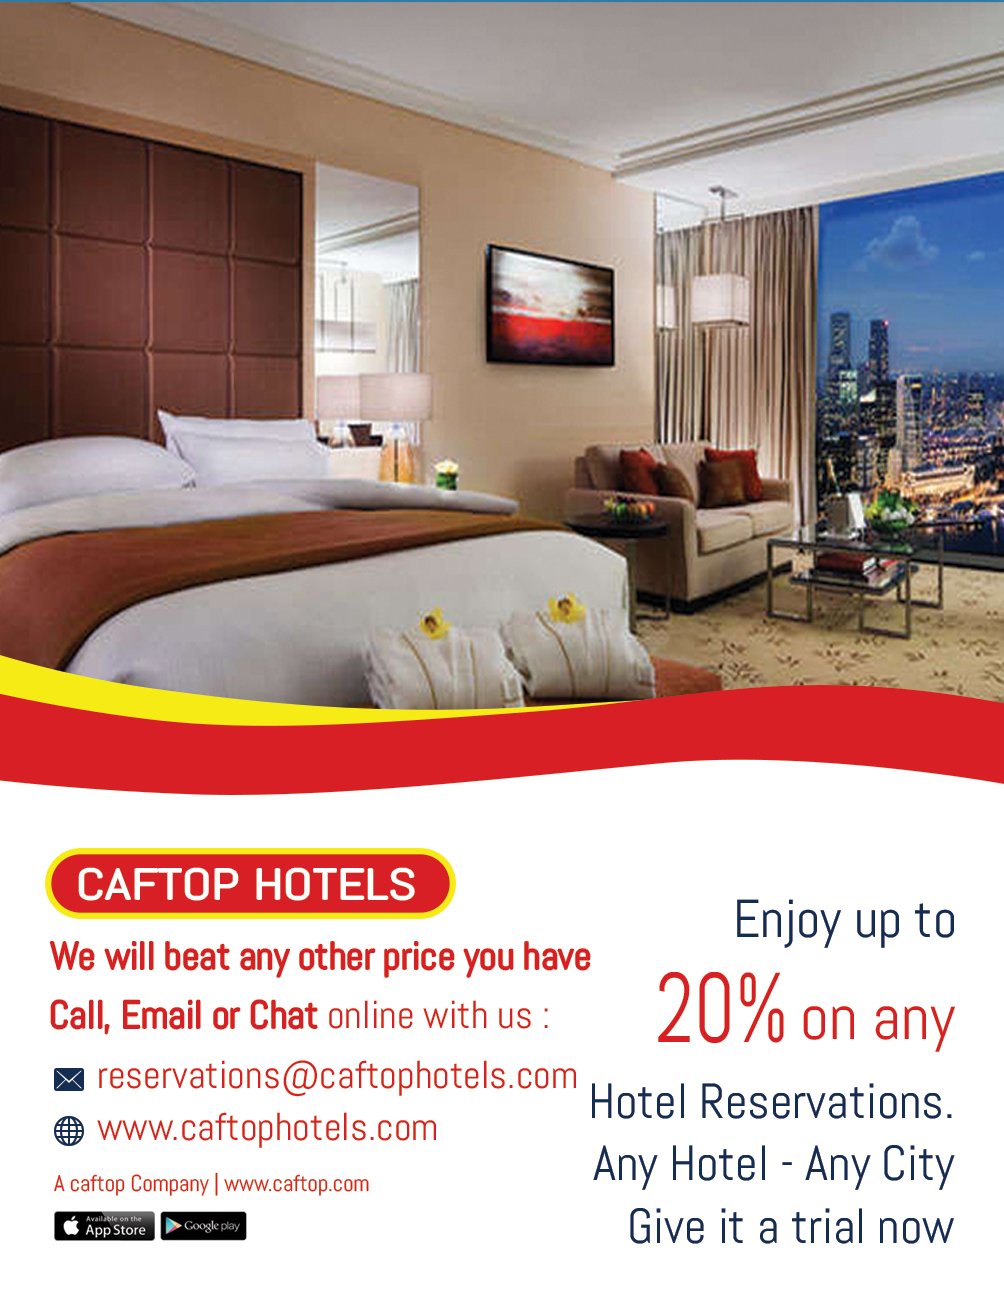 20% Discount off any Hotel Reservation - Caftop Hotels